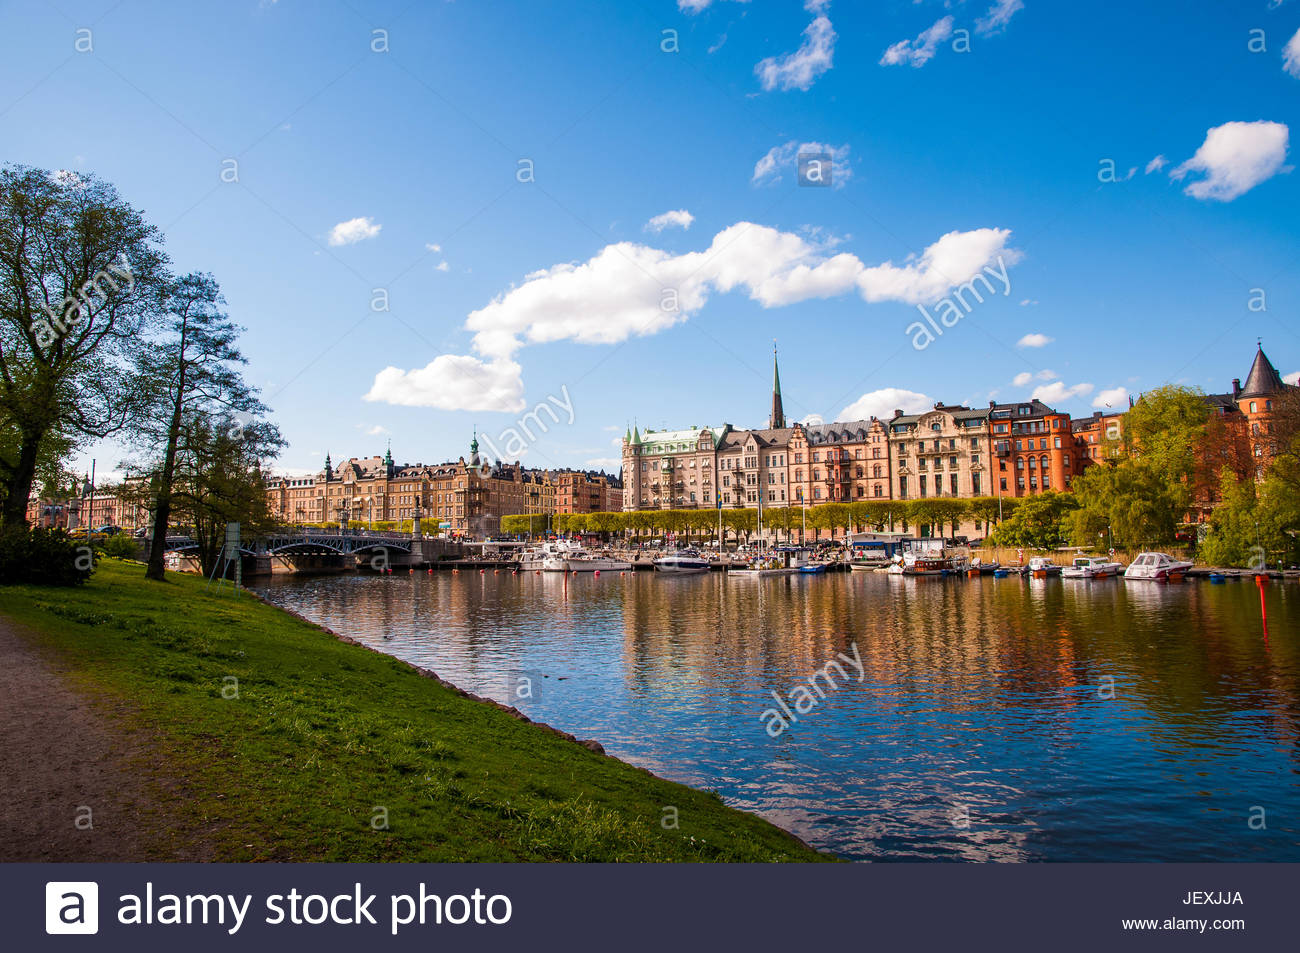 Historical buildings, monuments, museums, and galleries in Stockholm's city park, Djurgarden. - Stock Image